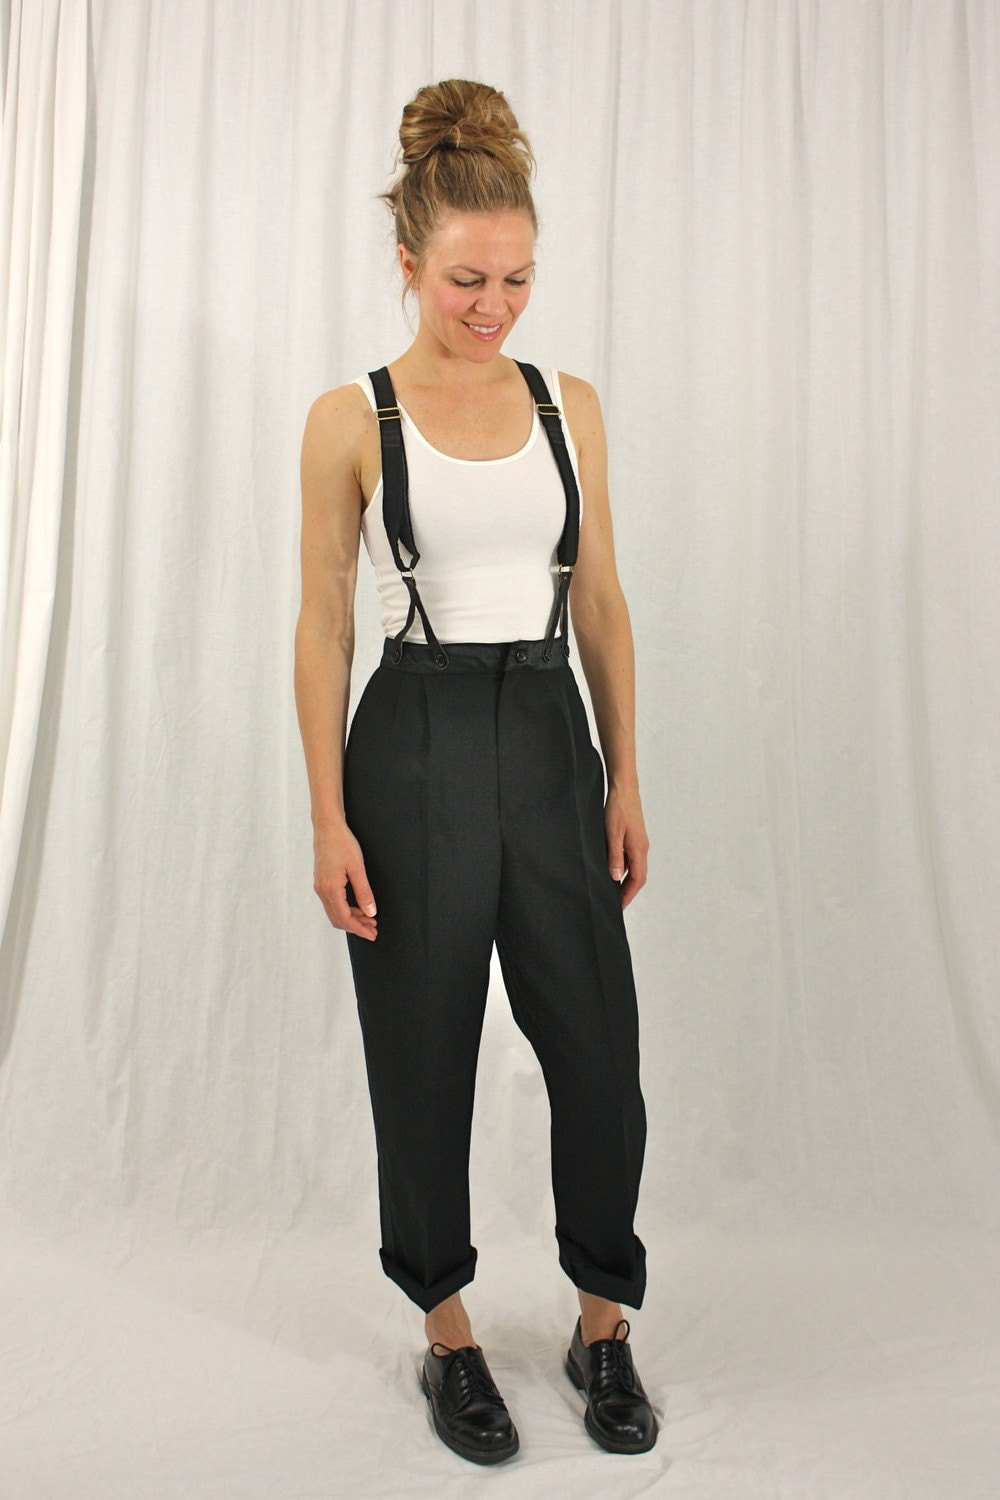 Here is a monster resource page with 32 ideas for men's suspender fashion. Men's suspenders can either be a hit or a miss. There are many ways you can wear suspenders and in many colors also.